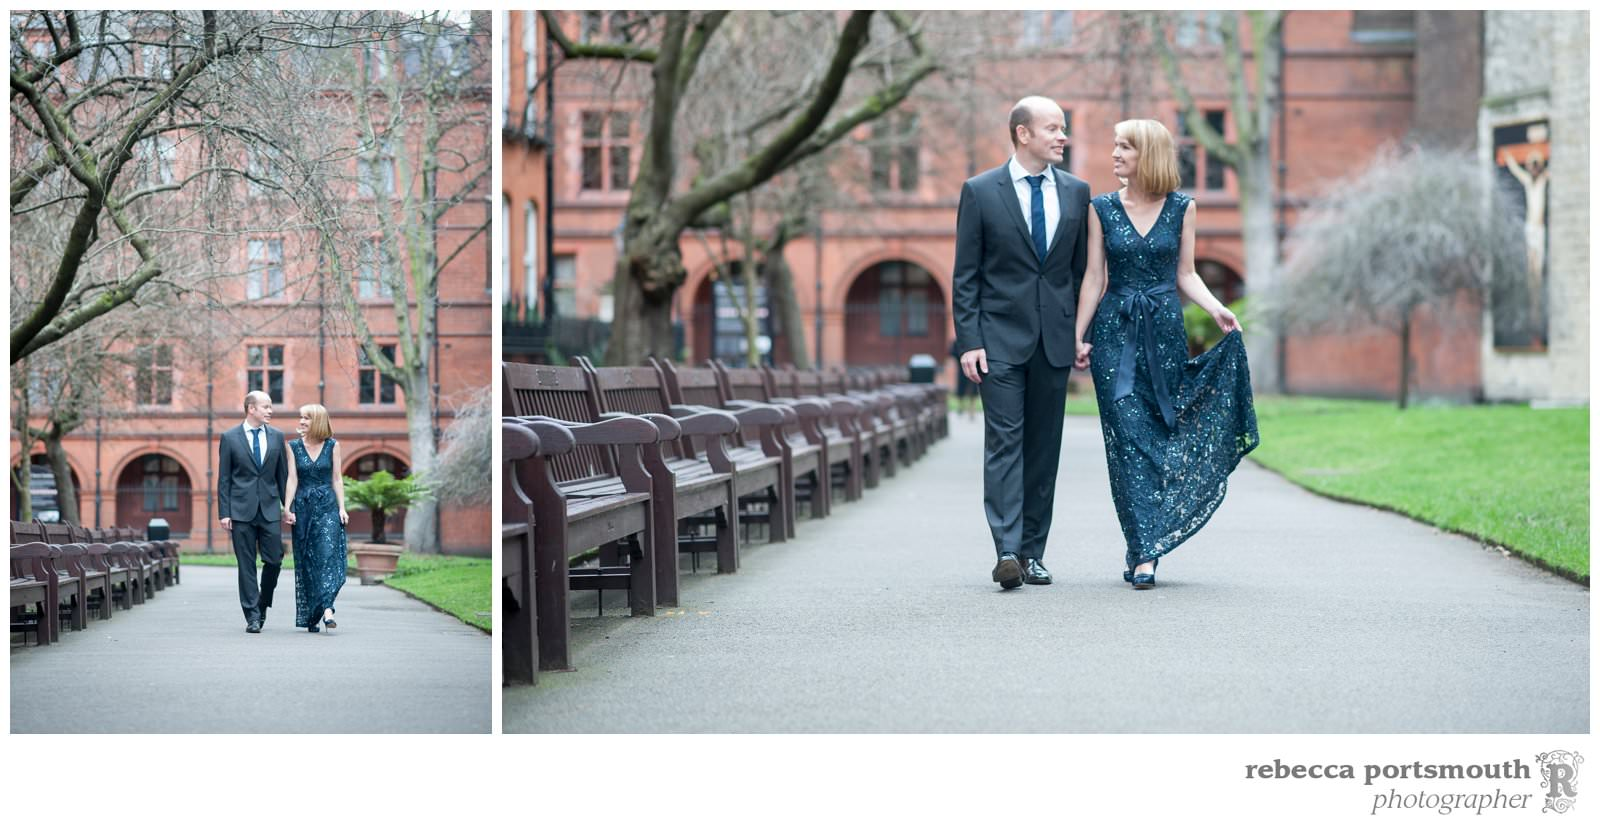 A bride and groom walk through Mount Street Gardens for bridal portraits before their vow renewal in the Marylebone Room, Mayfair Library.